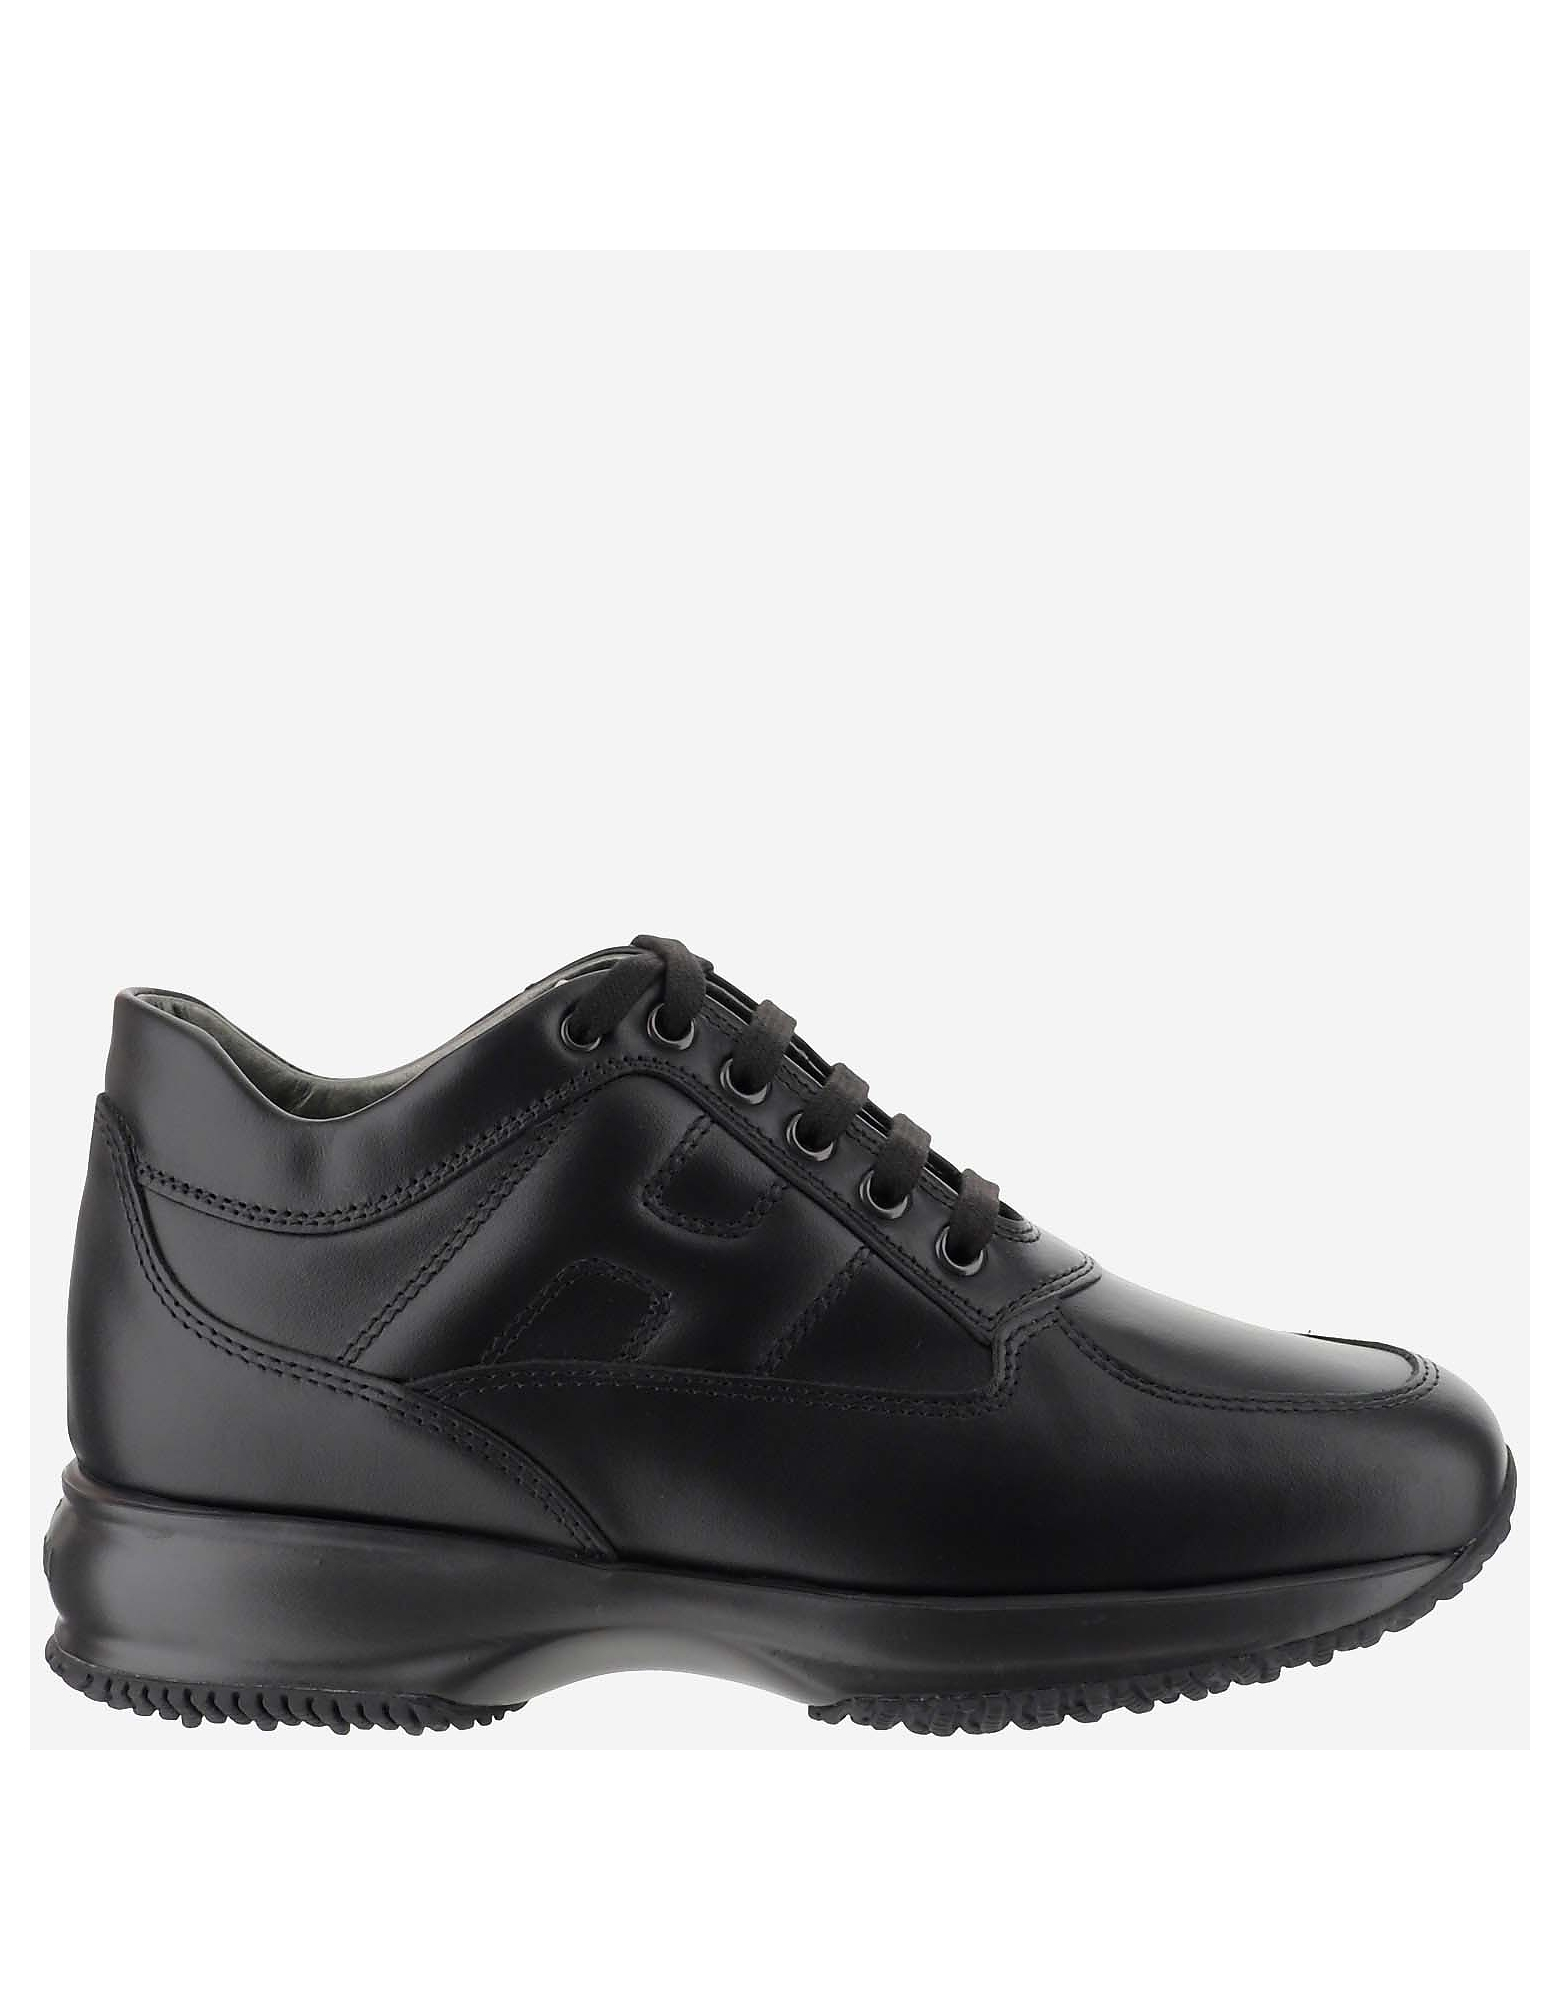 Hogan Designer Shoes, Black Interactive Leather Women's Sneakers